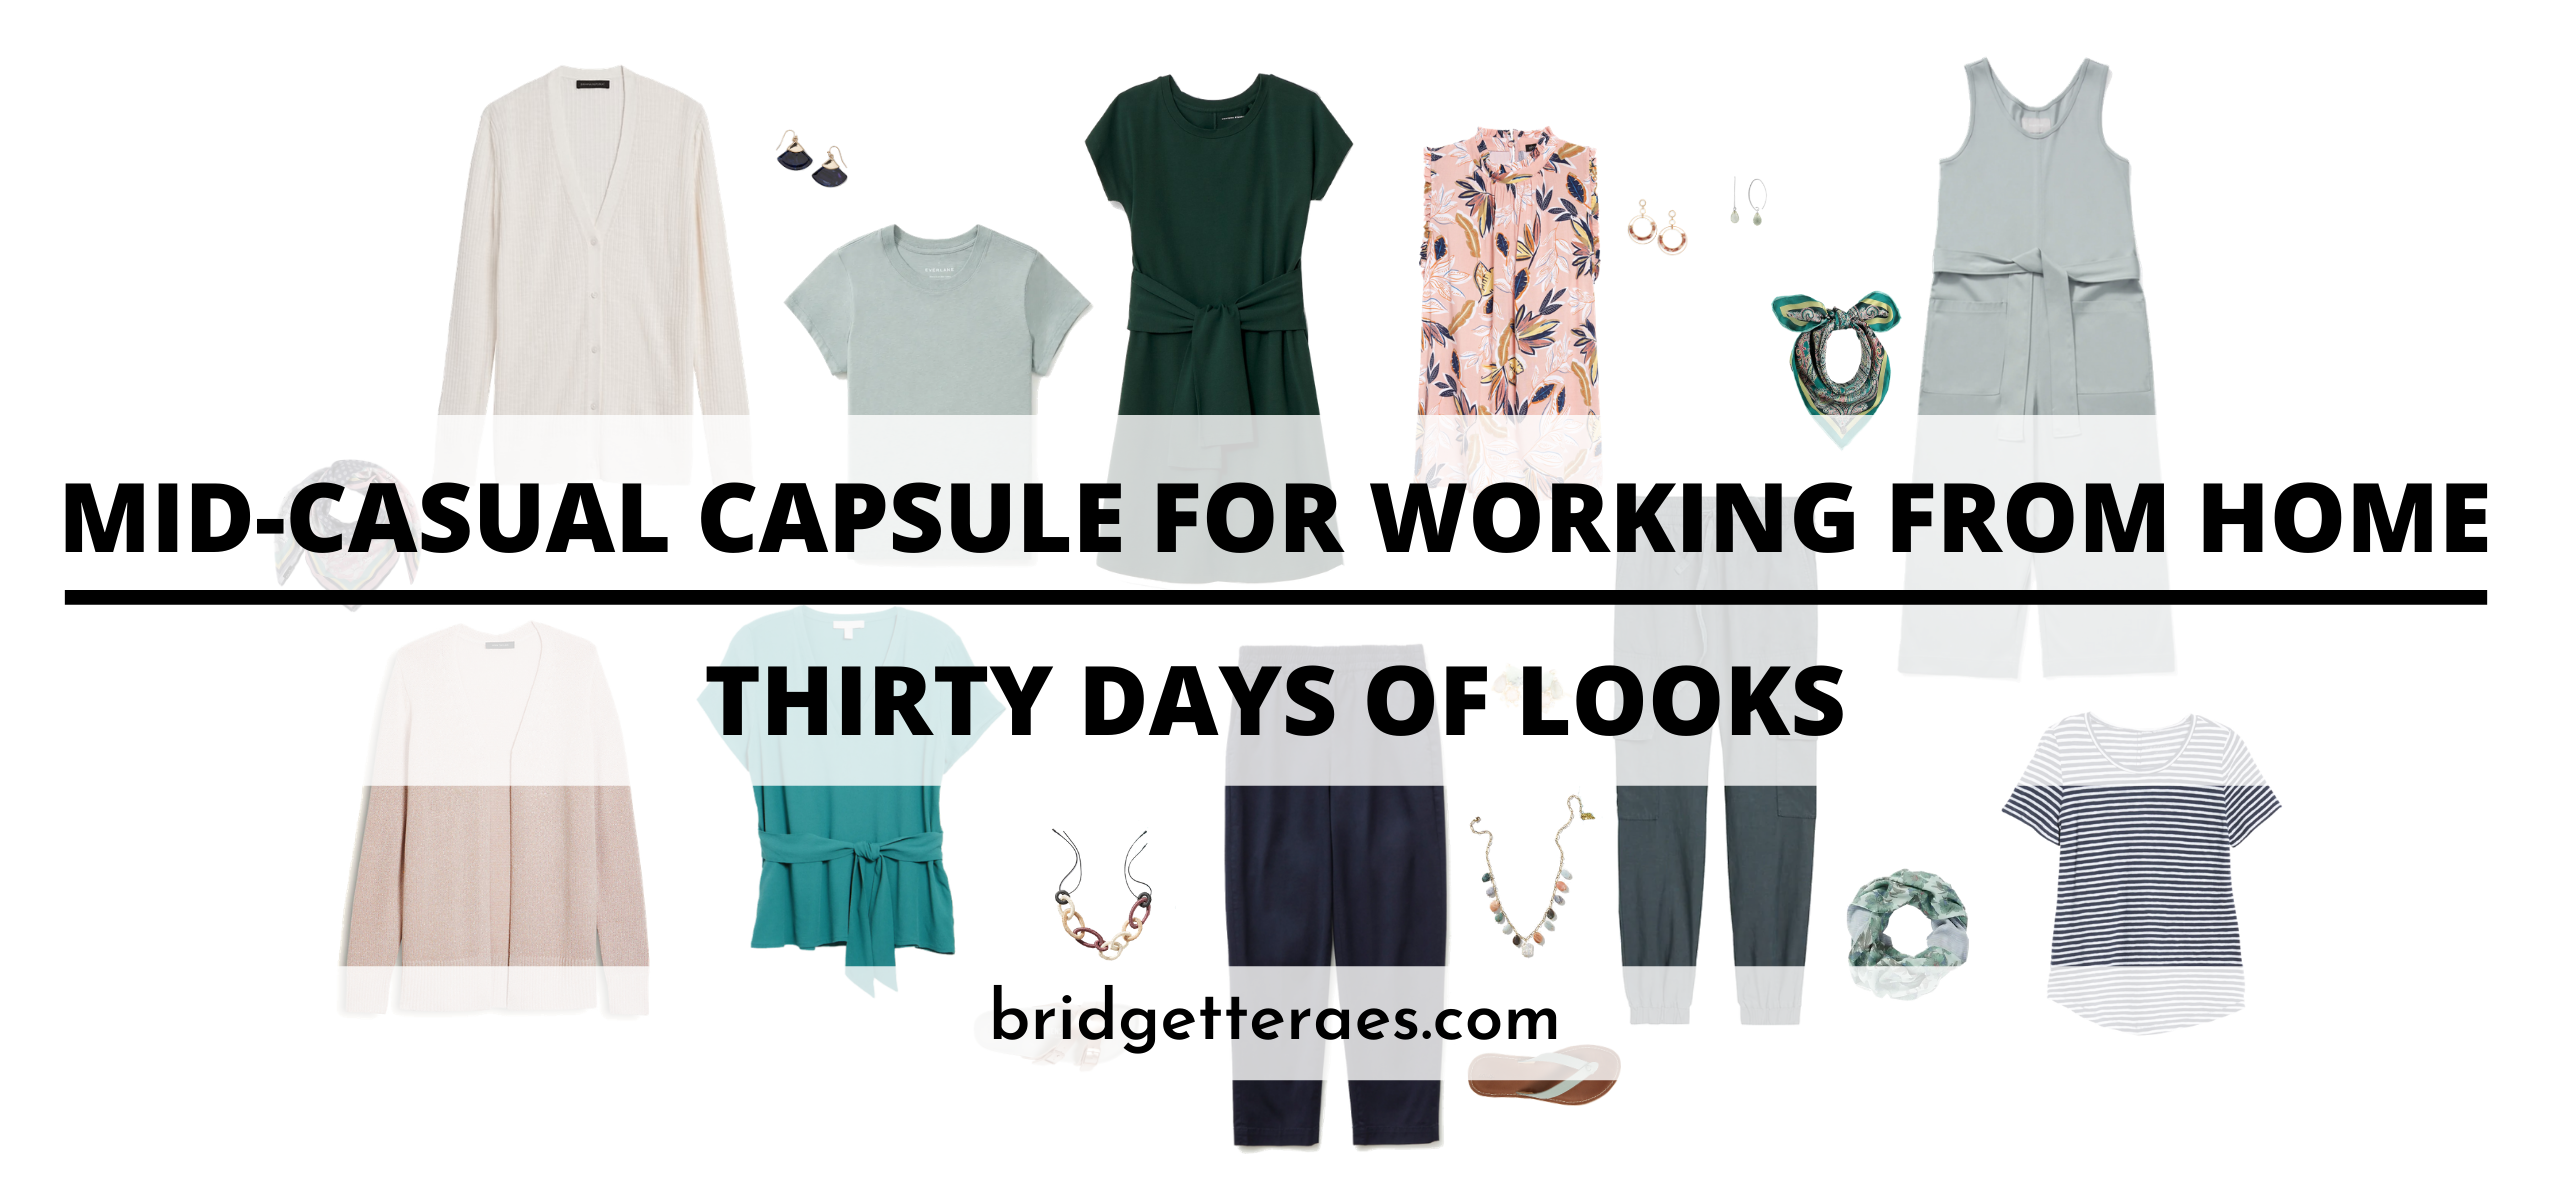 Mid-Casual Capsule for Working From Home: 30 Days of Looks